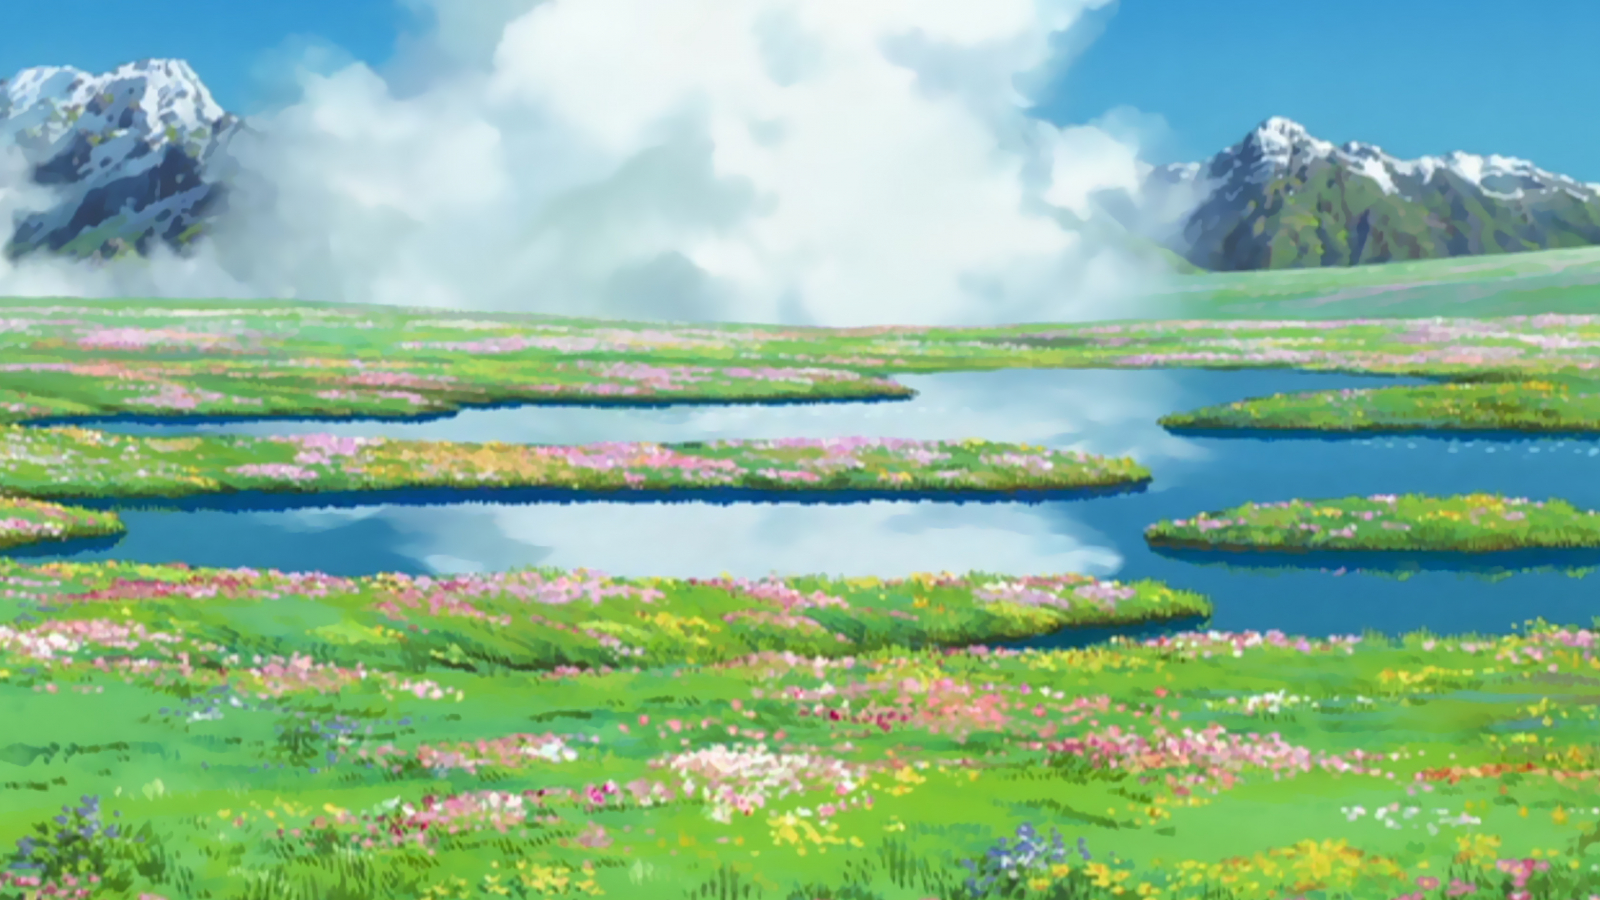 Free Download Howl Moving Castle Hd Wallpaper 1680x1050 For Your